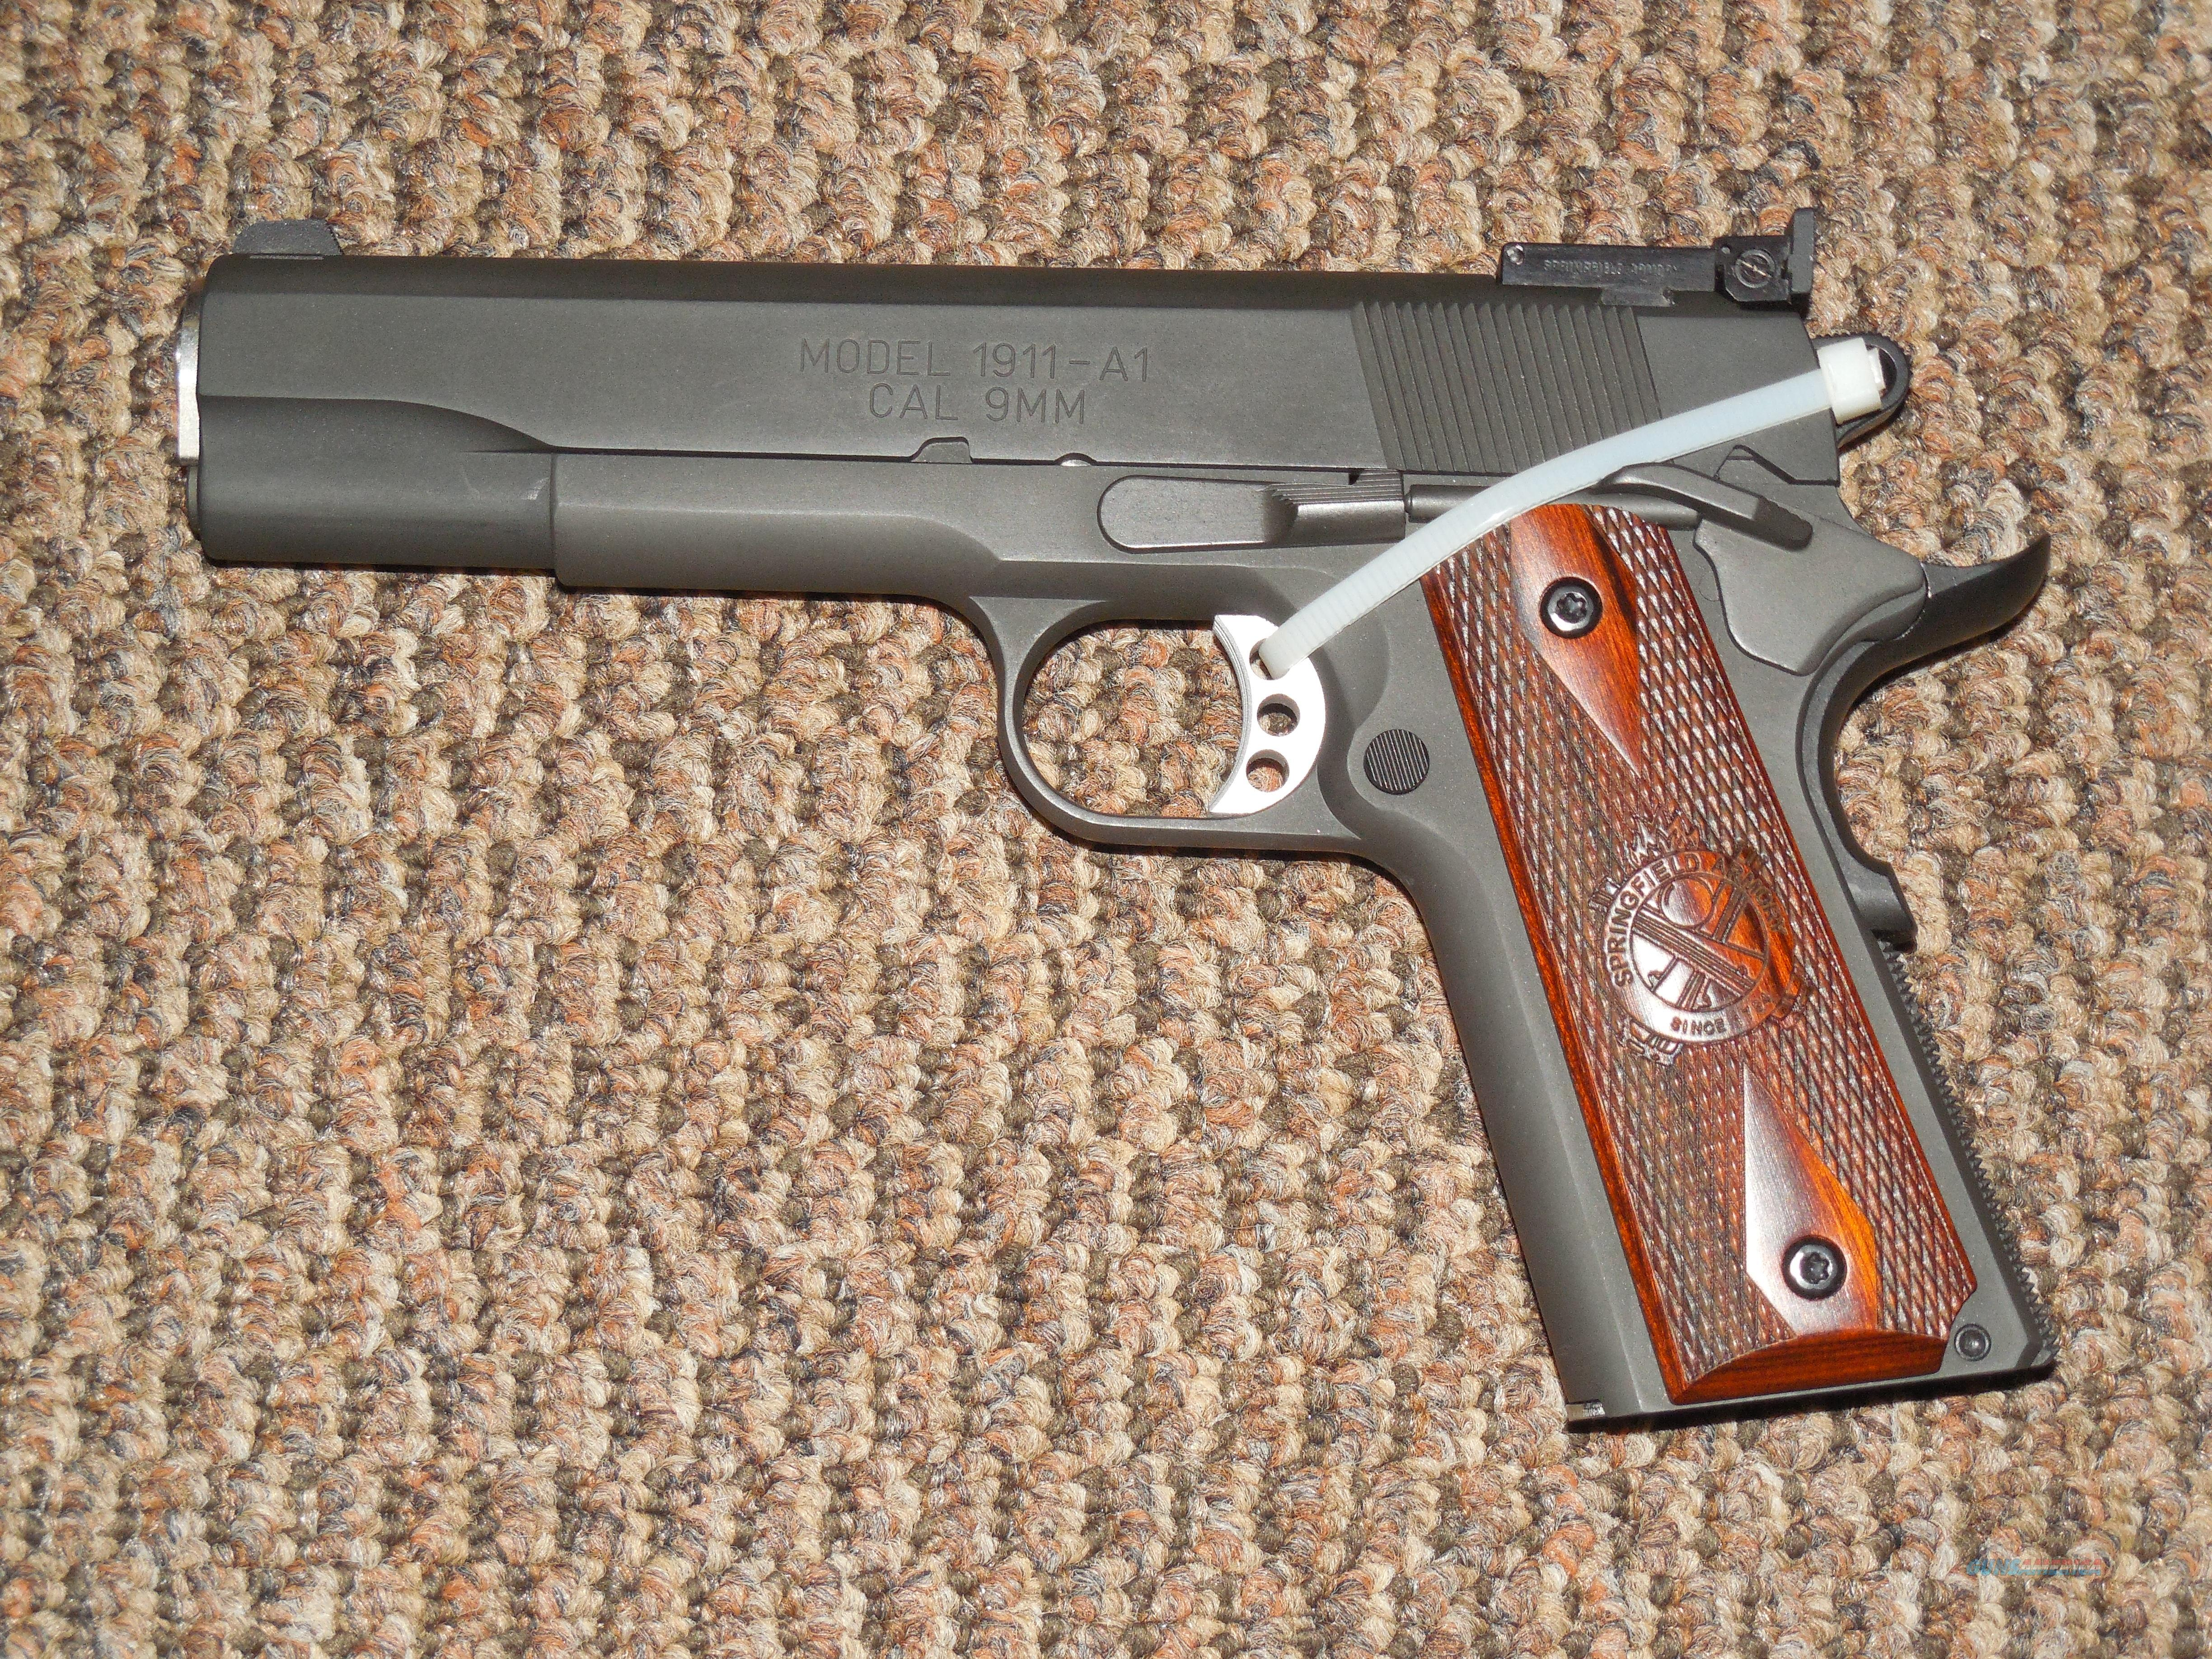 SPRINGFIELD ARMORY 1911 RANGE OFFICER IN 9 MM  Guns > Pistols > Springfield Armory Pistols > 1911 Type